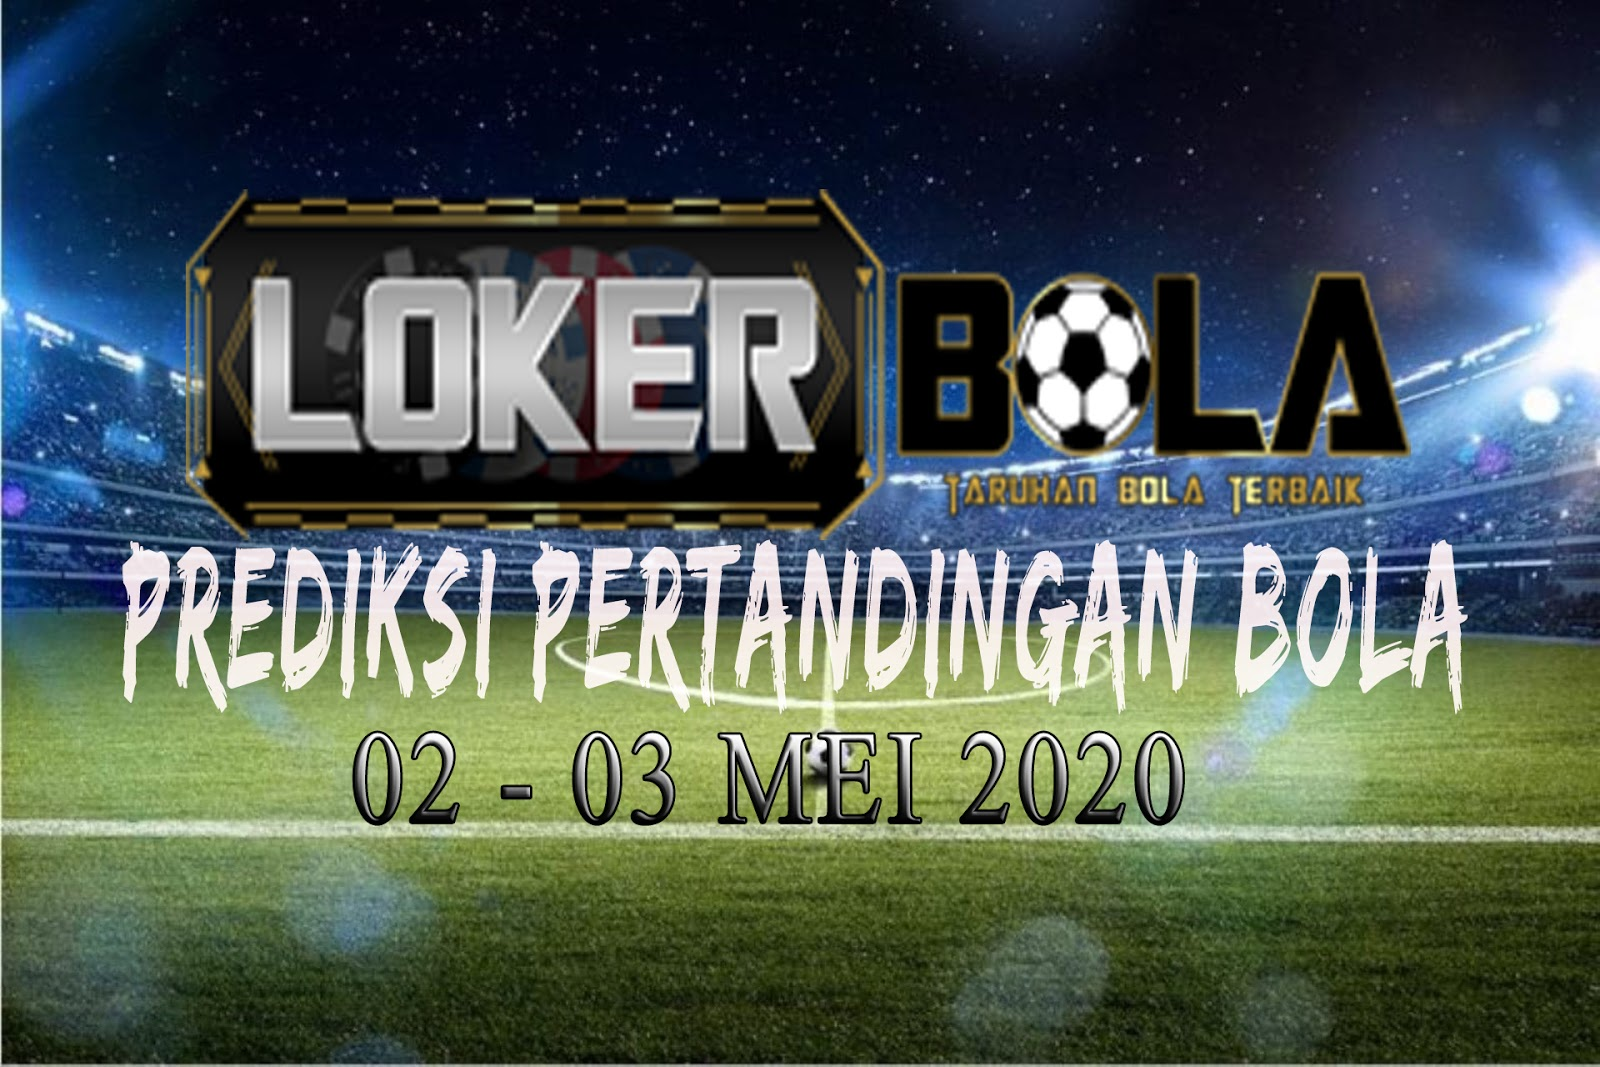 HASIL PERTANDINGAN BOLA 02 – 03 May 2020